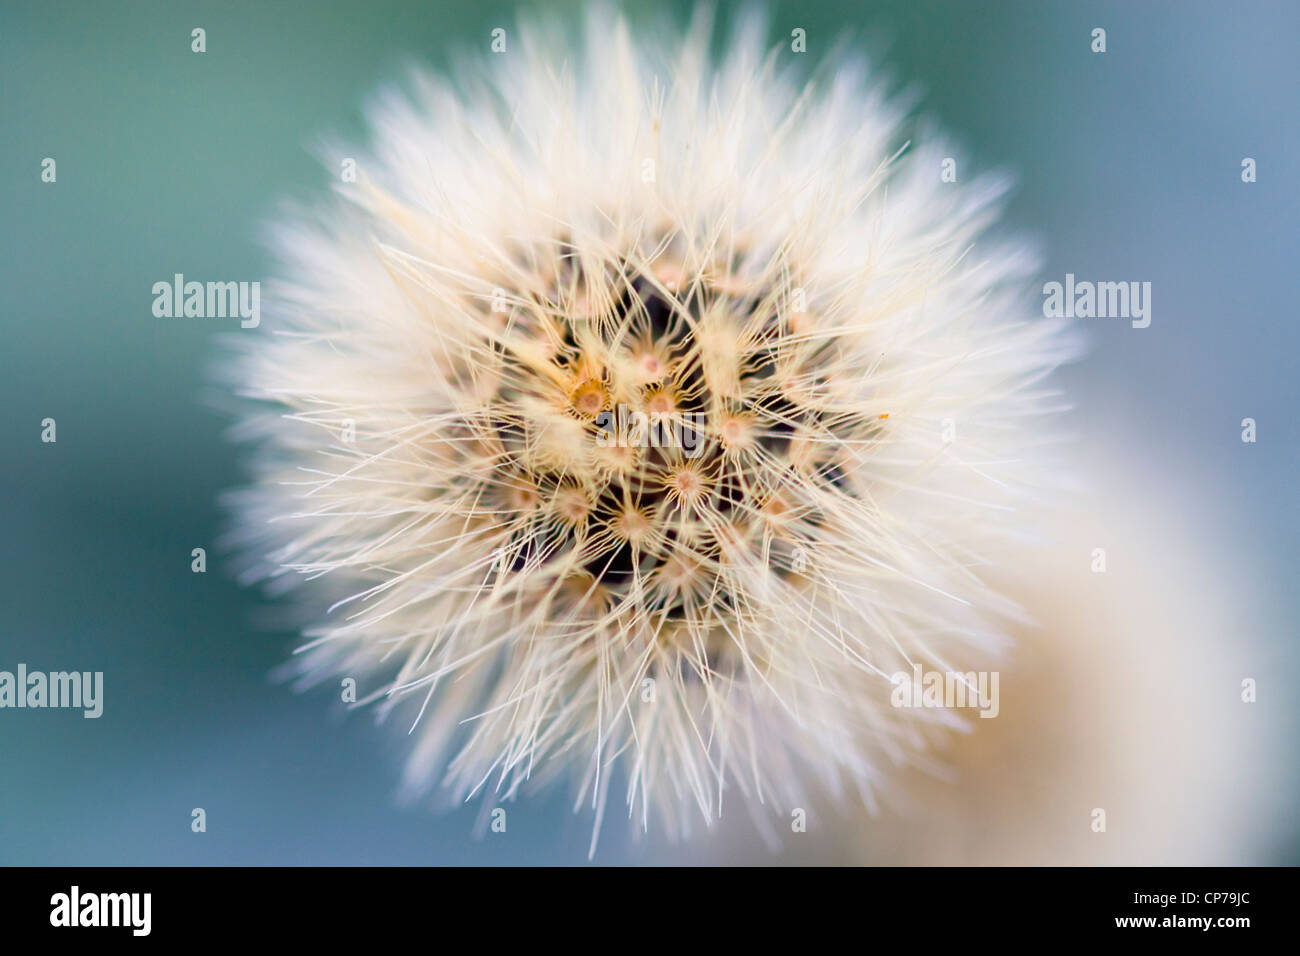 Mount Parnassus scabious, Pterocephalus perennis, white hairy seed head seen from above. - Stock Image